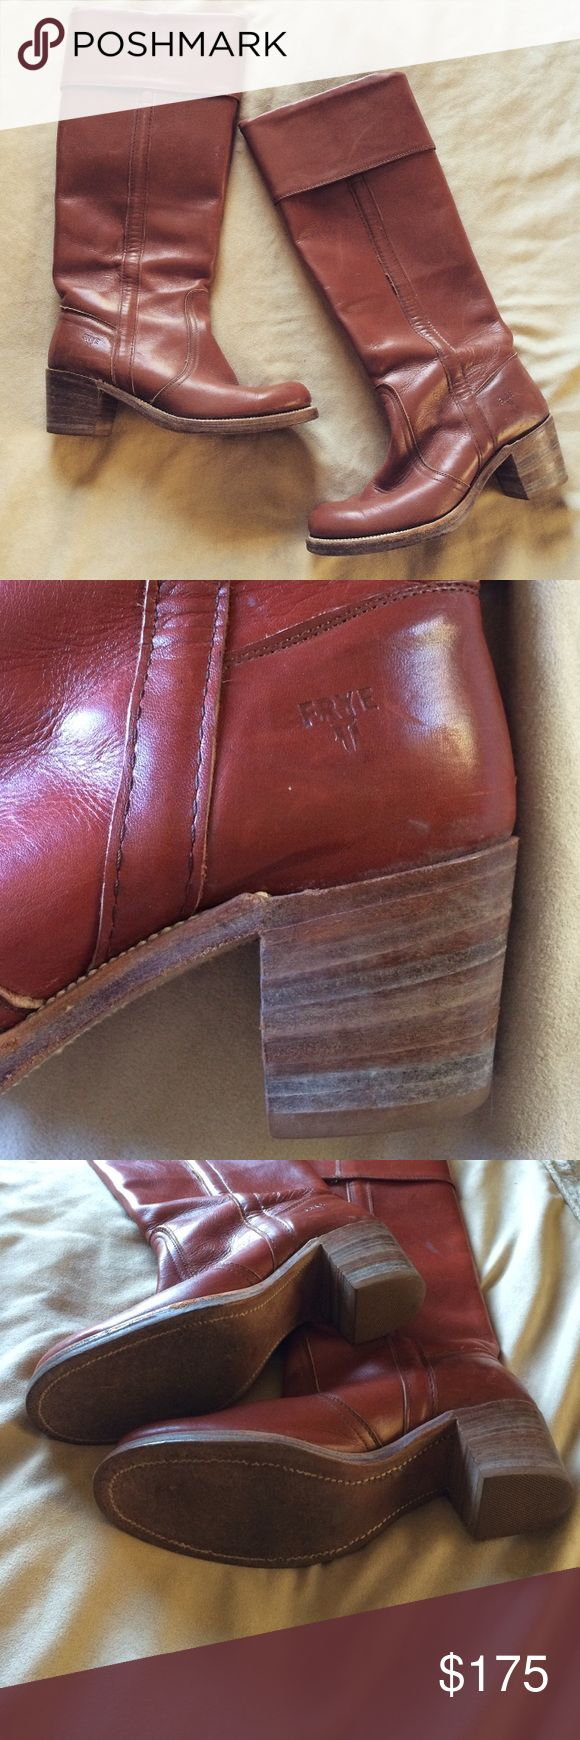 Vintage 1980's Frye Riding Boots My mom purchased them in the 1980's, and they retailed for $300. While they are still in great condition, they are vintage and therefore have a few marks. They are a brick red/brown color. Size 8, but run a little small. Frye Shoes Heeled Boots